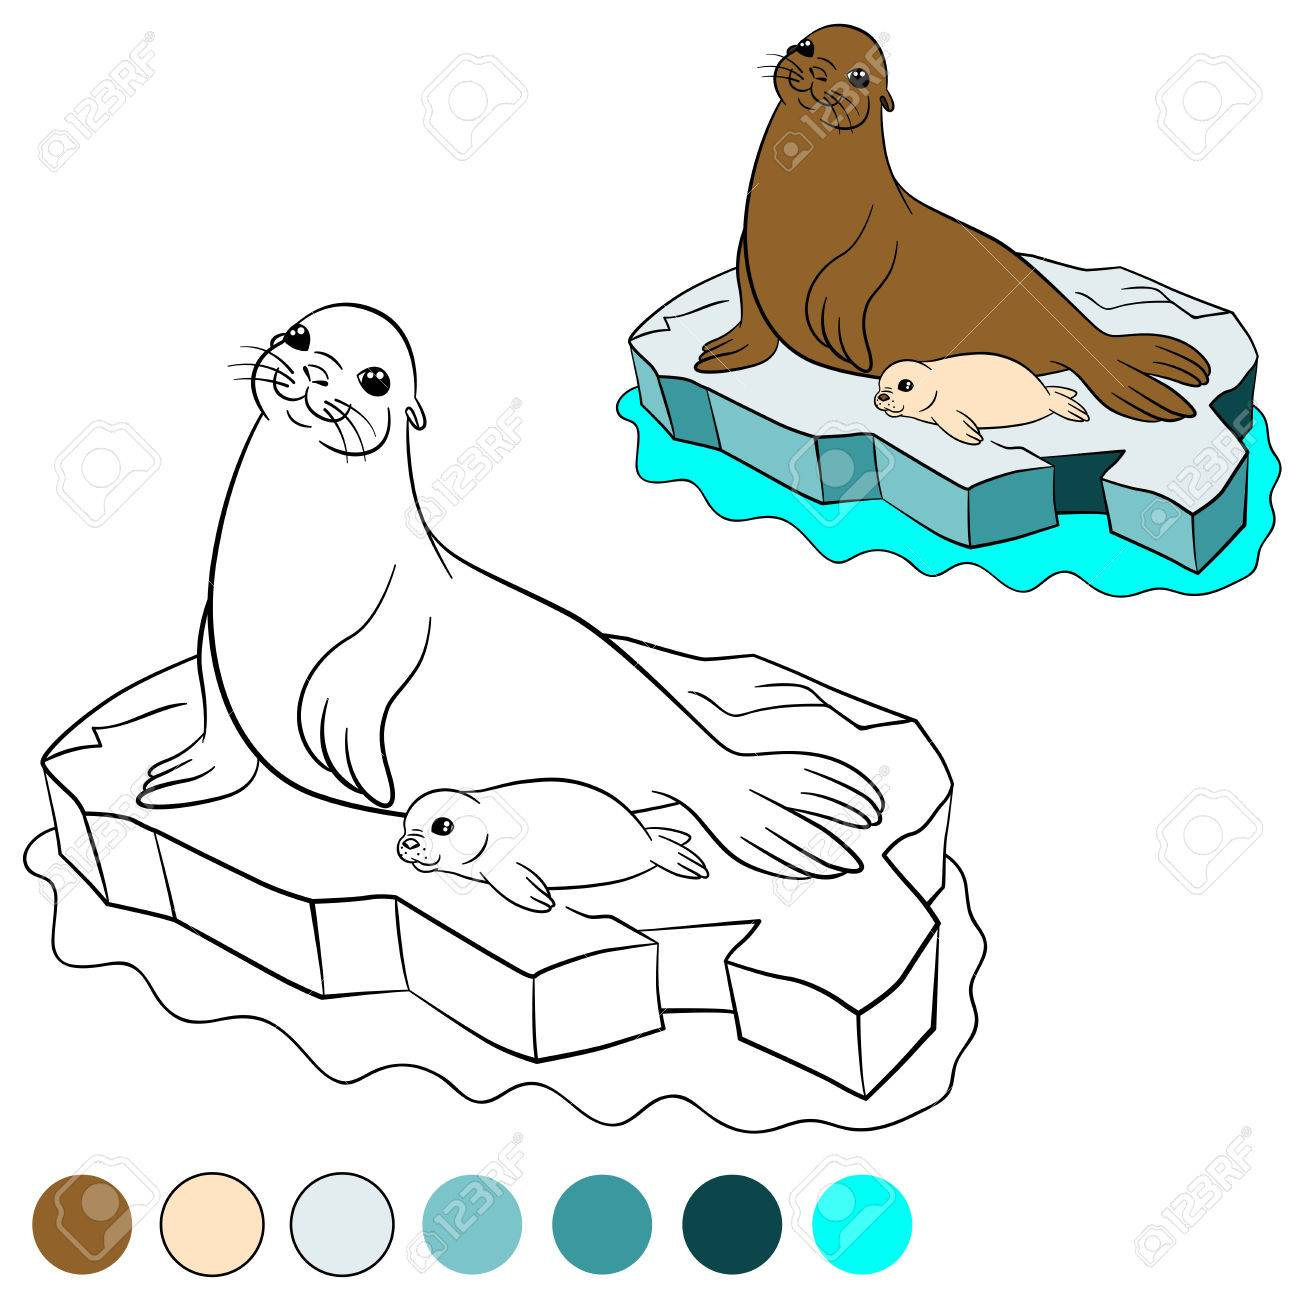 Coloring Page With Colors Mother Fur Seal Her Little Cute White Coated Baby